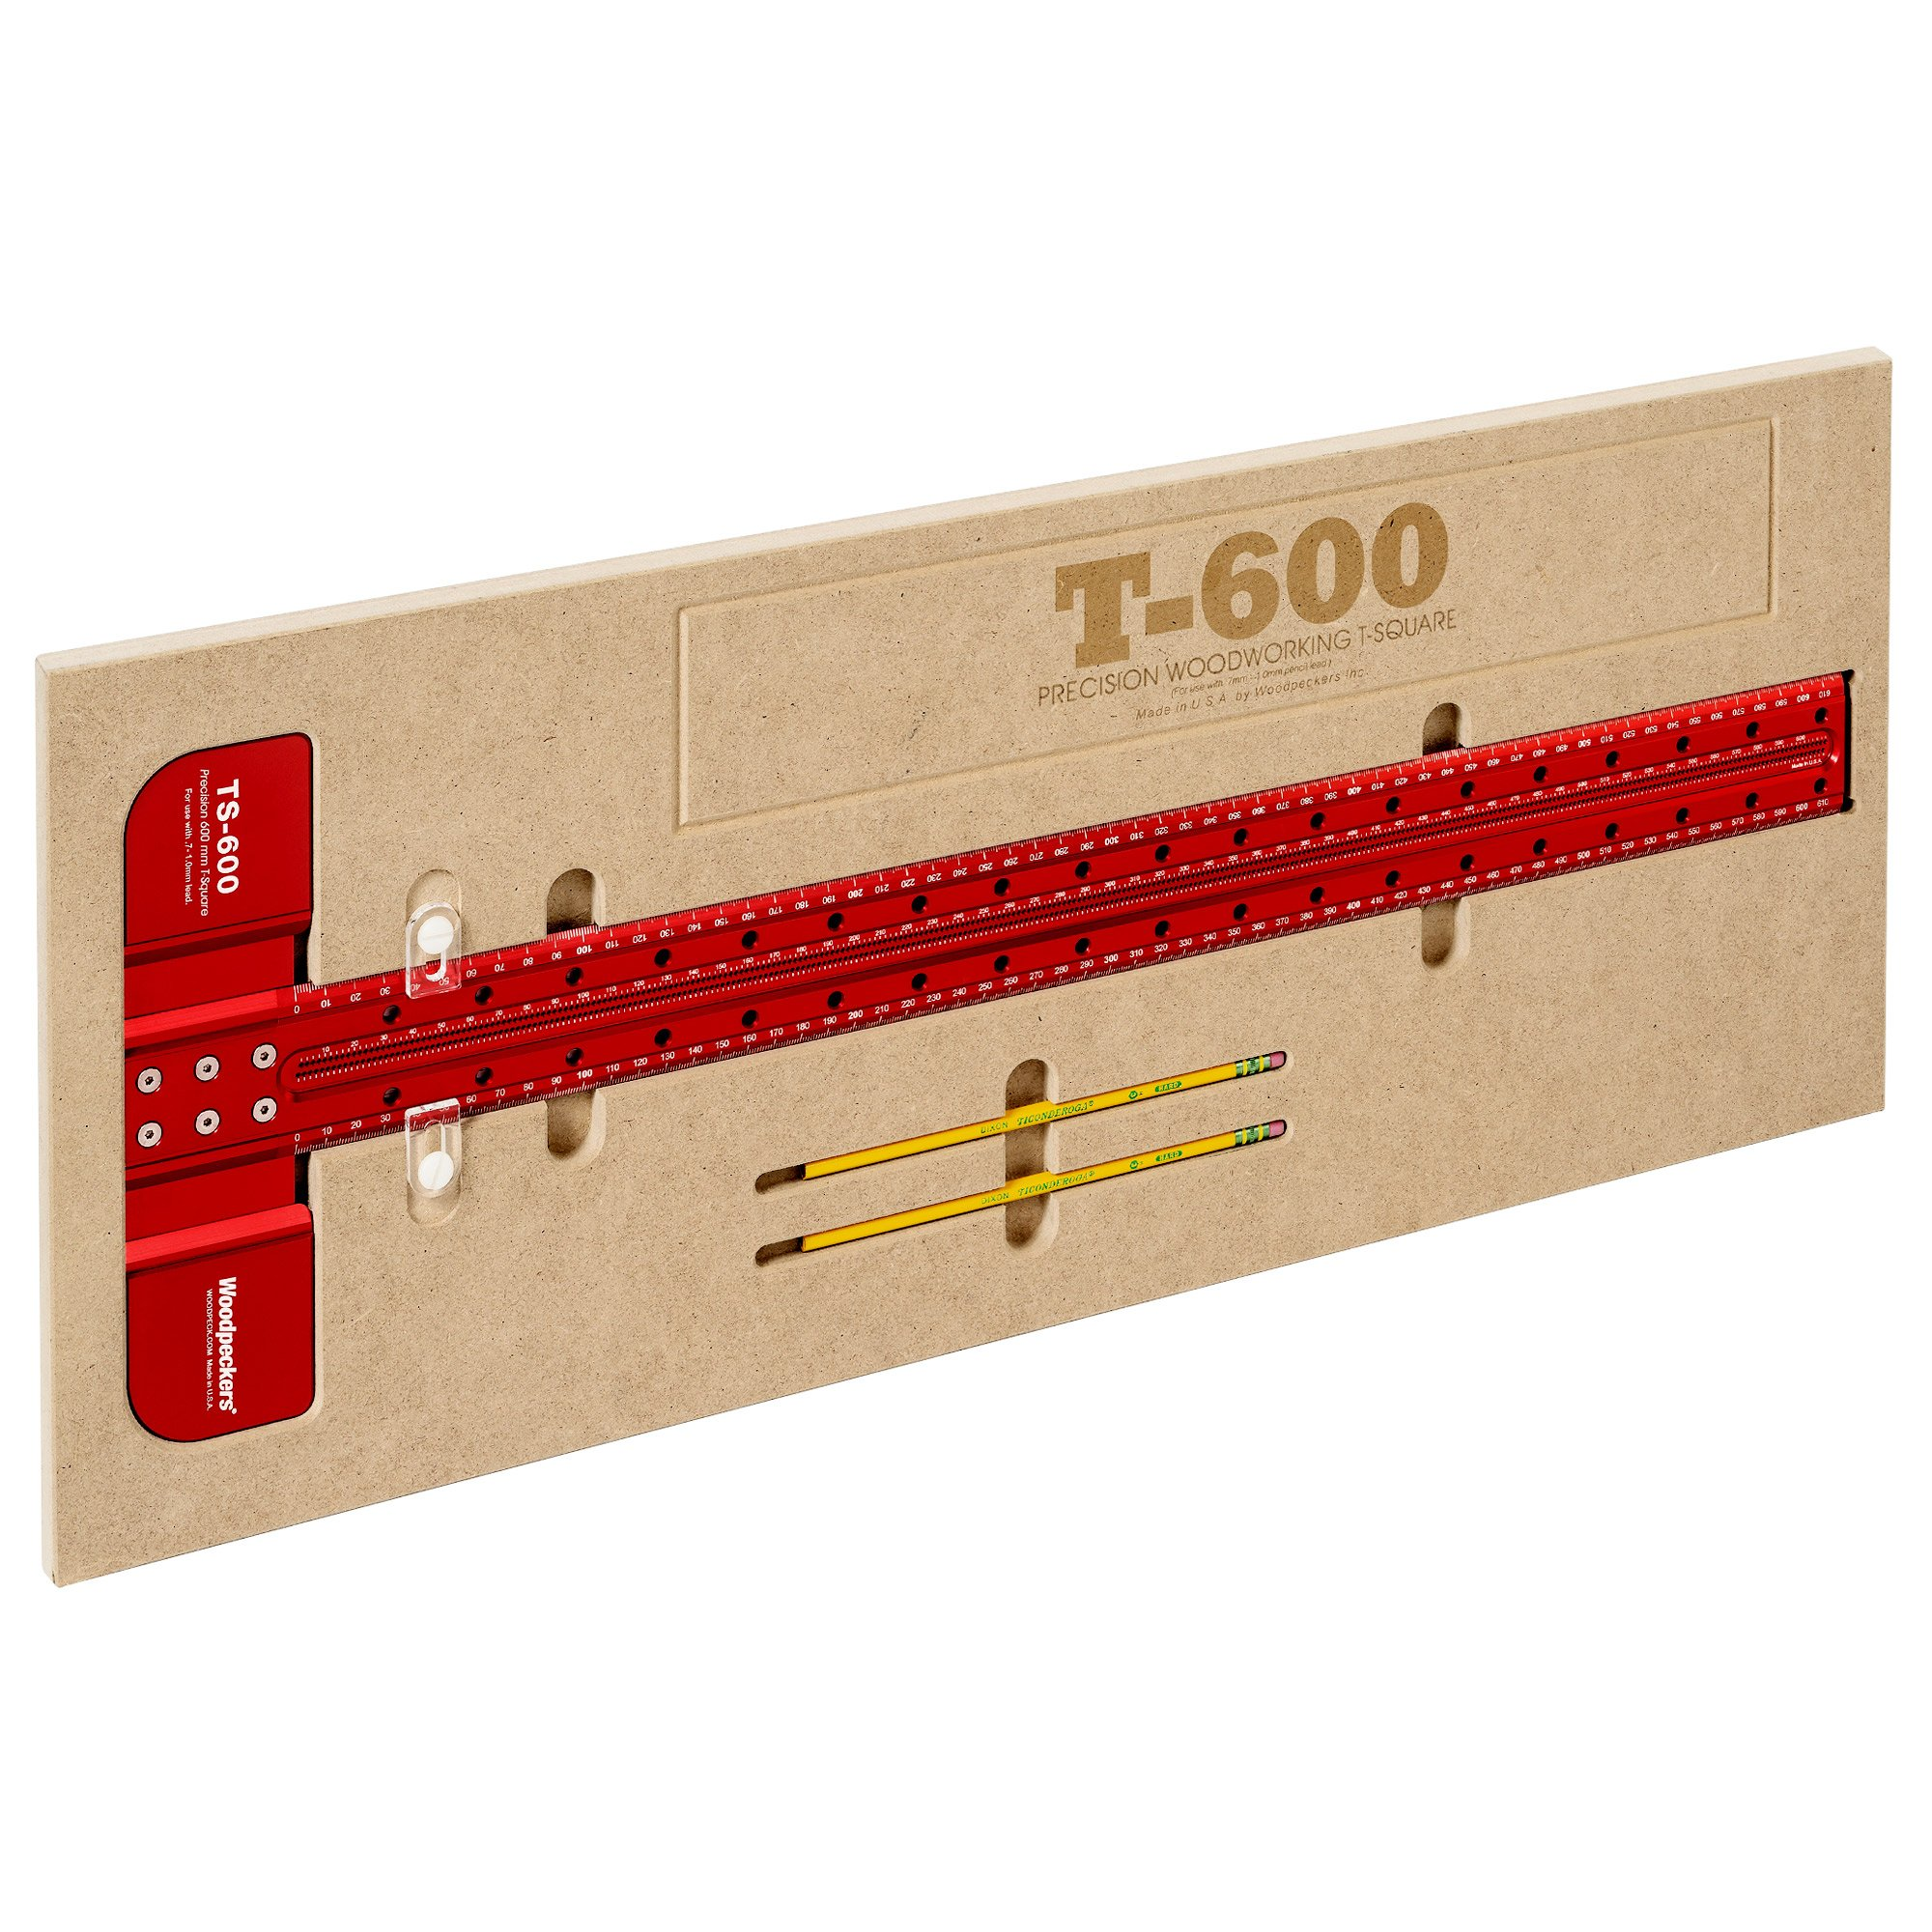 Woodpeckers Precision Woodworking Tools TS-600MM T-Square, 600mm by Woodpeckers